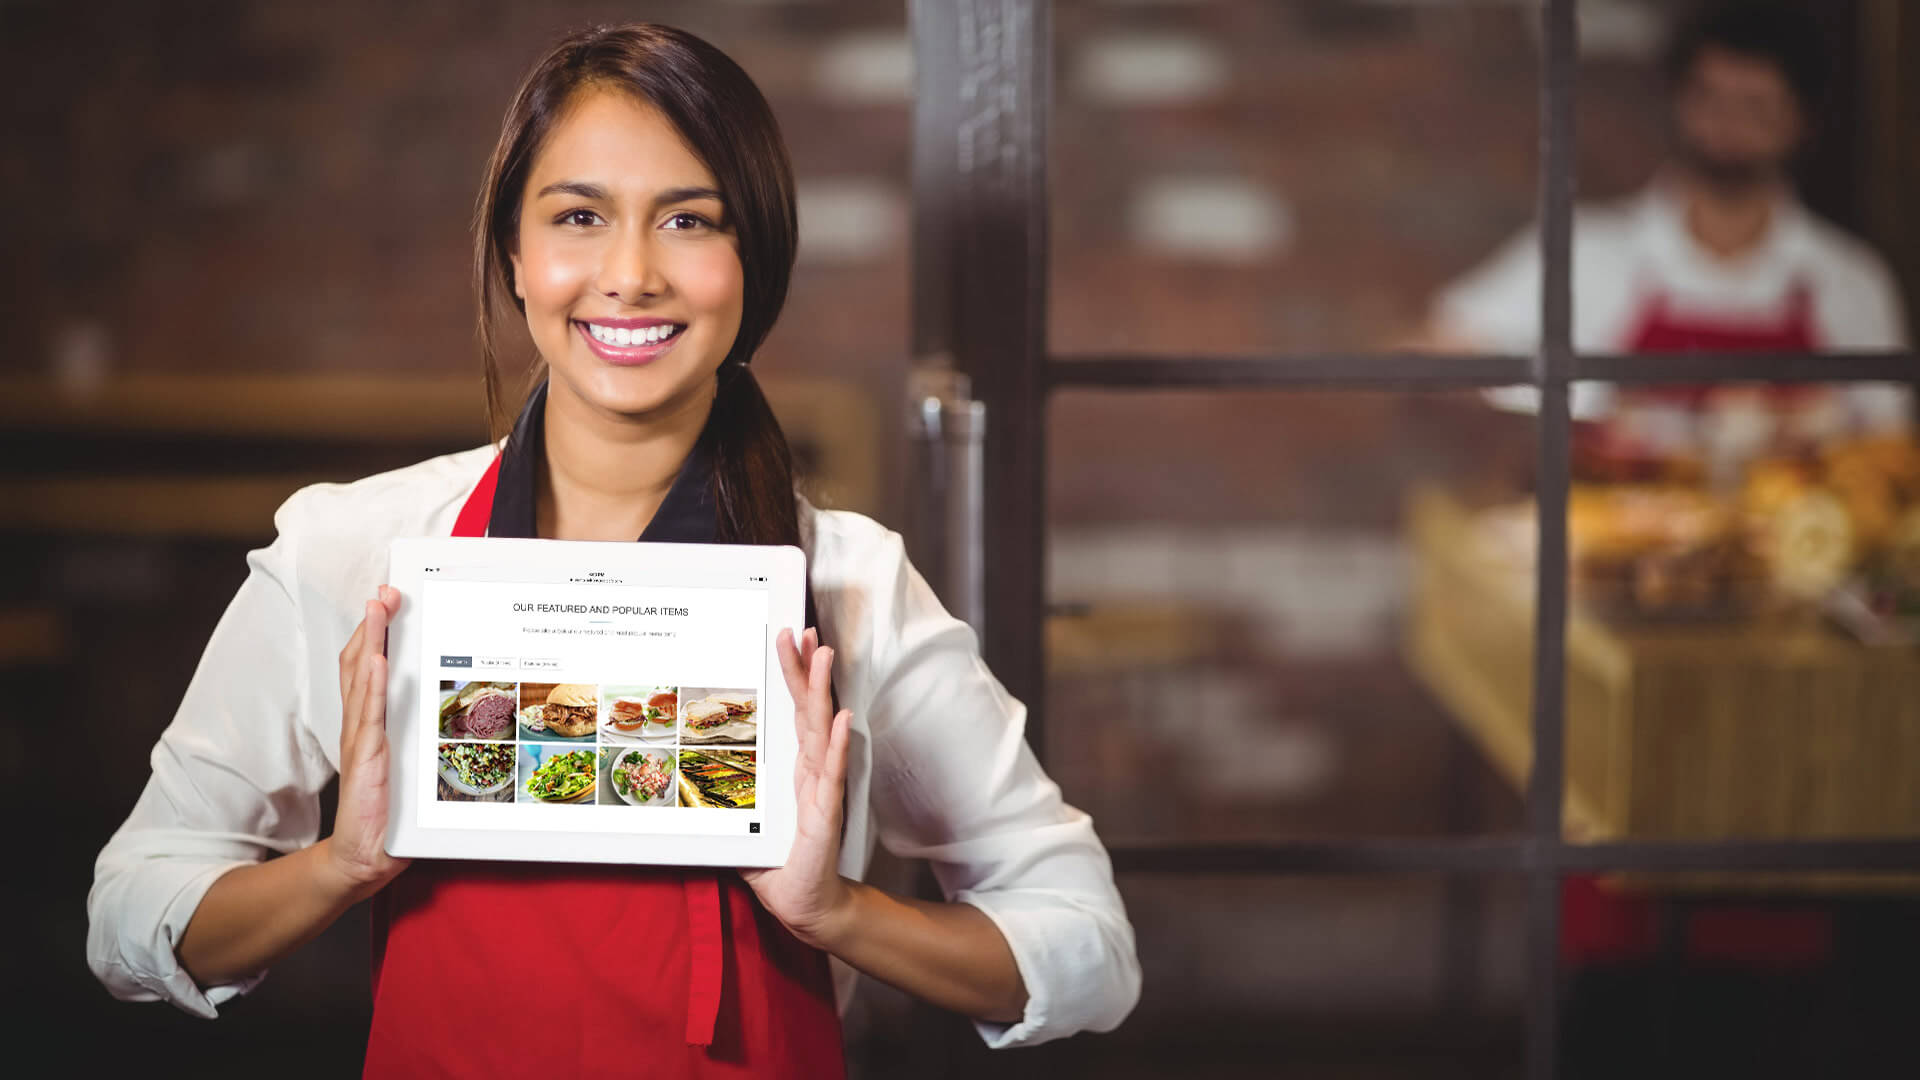 Restaurant Online Ordering System - Daily Delivery.